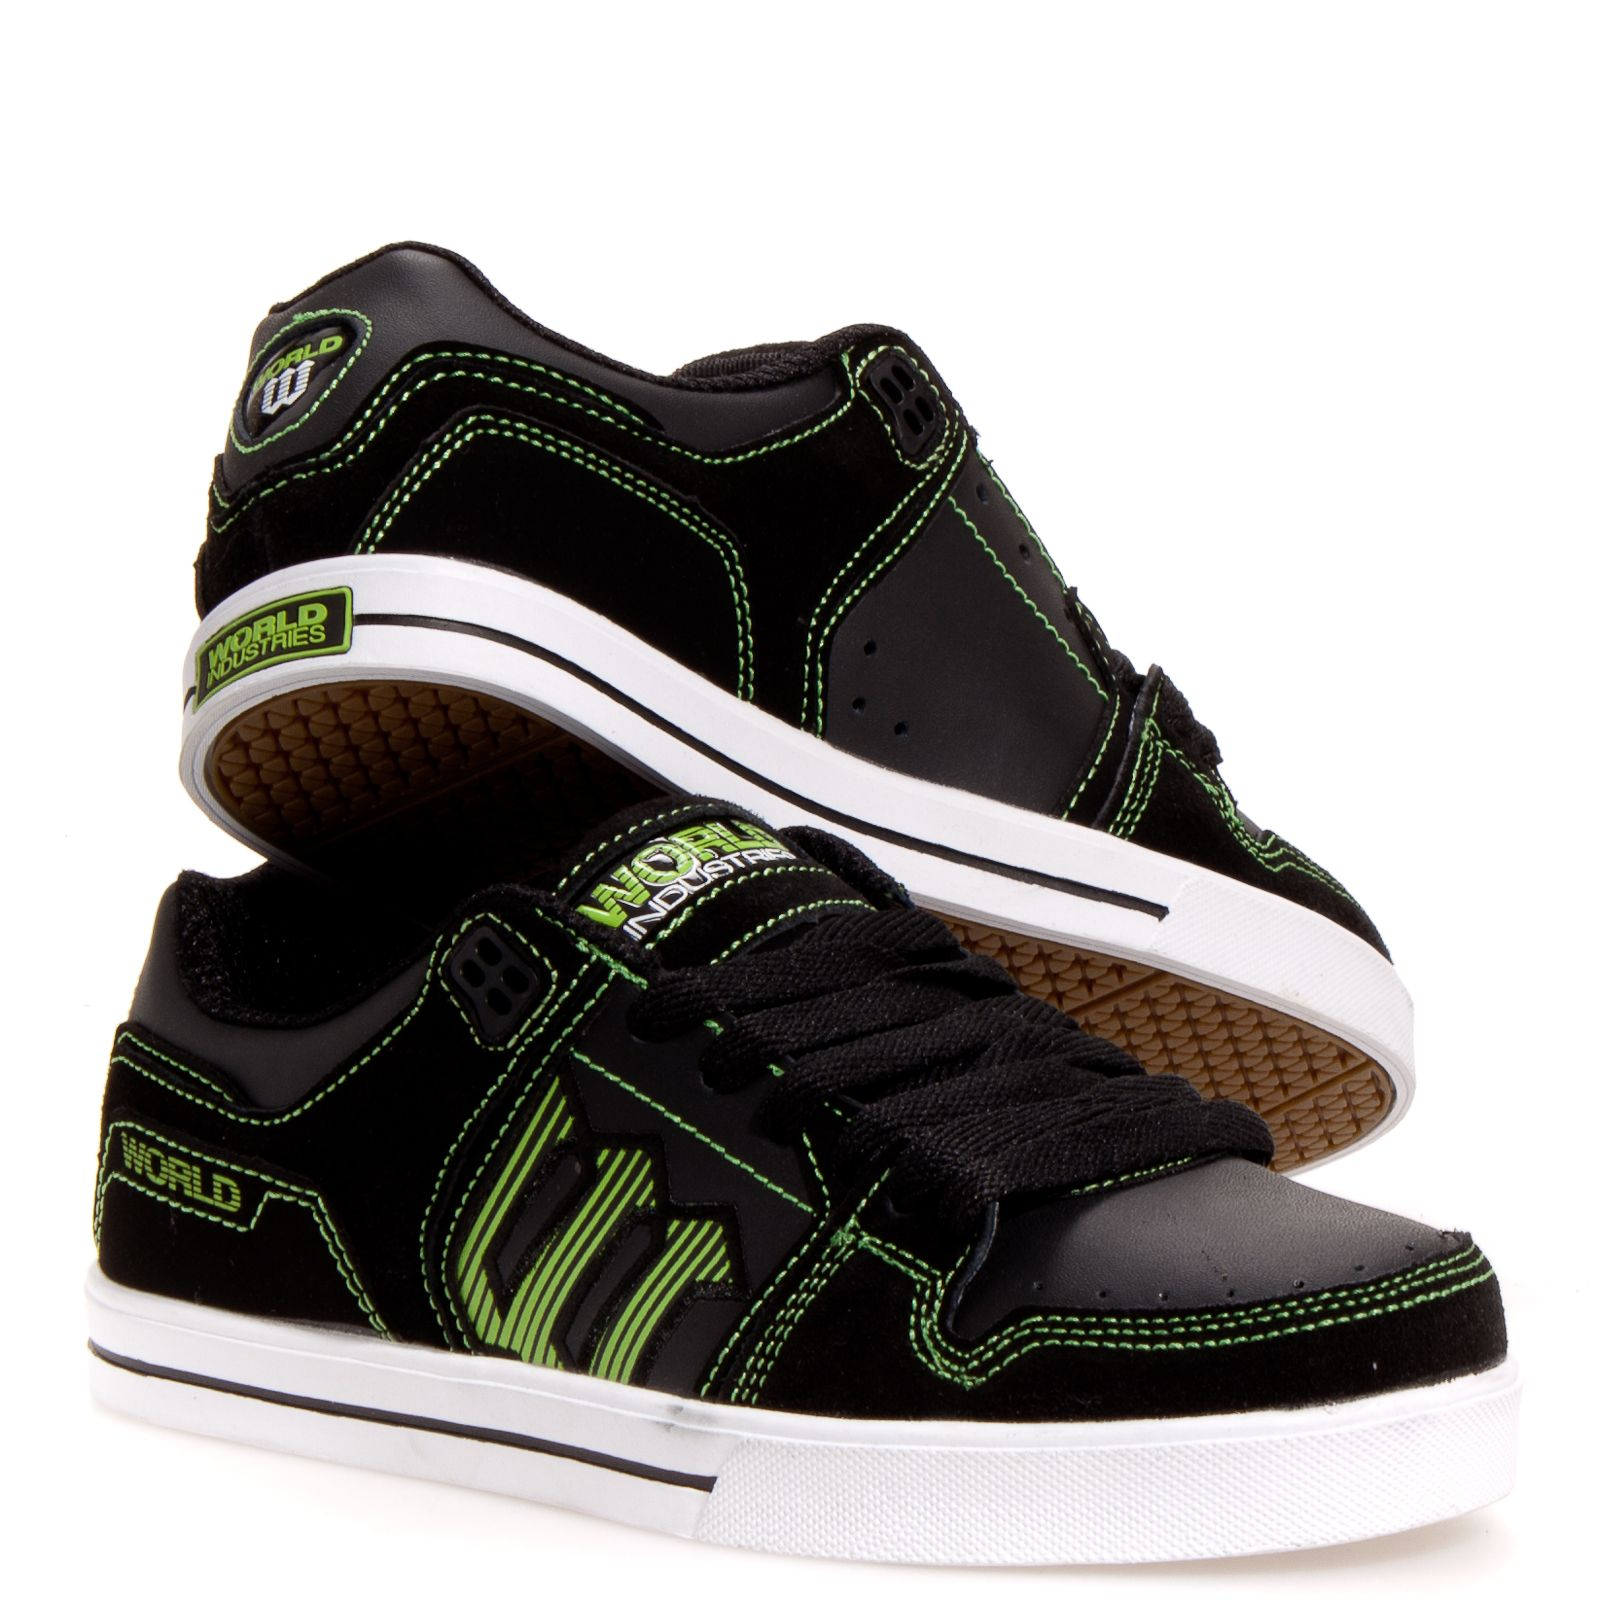 World Industries Monarch Men's Skate Shoes: Black 9.5 ...